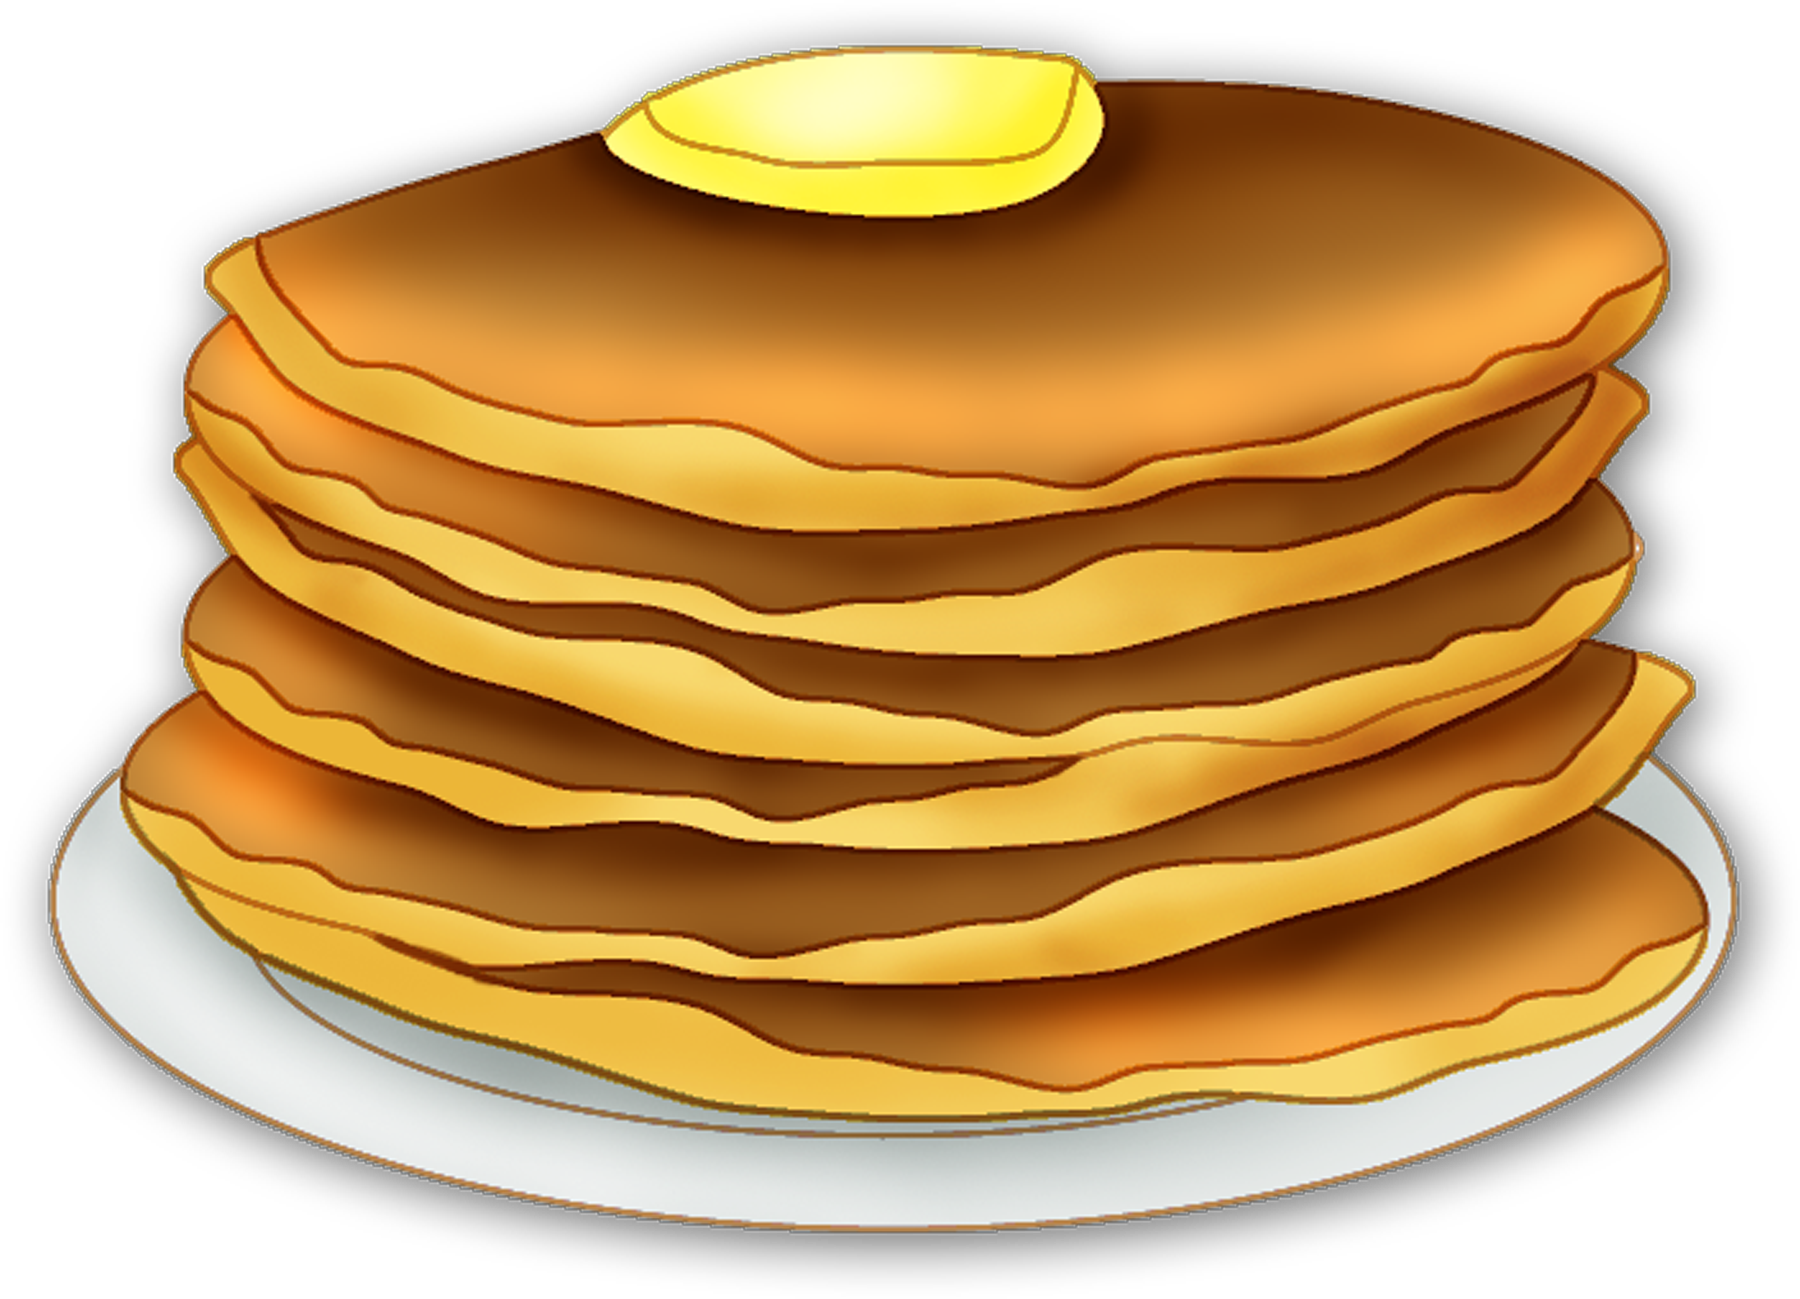 Transparent pancakes animated. Collection of pancake